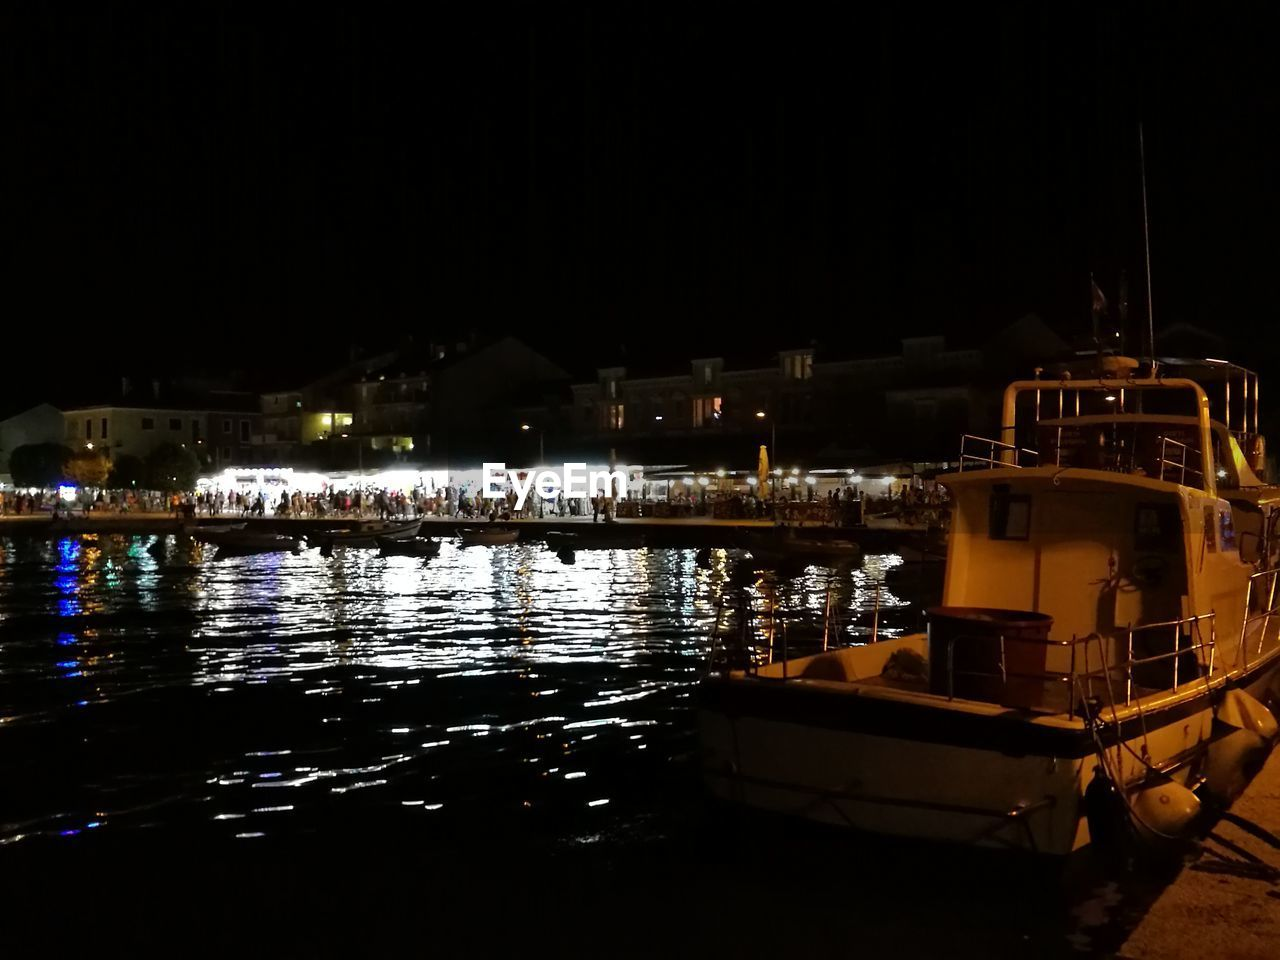 night, nautical vessel, mode of transport, illuminated, boat, building exterior, built structure, water, architecture, transportation, moored, outdoors, no people, sea, harbor, sailing, sky, nature